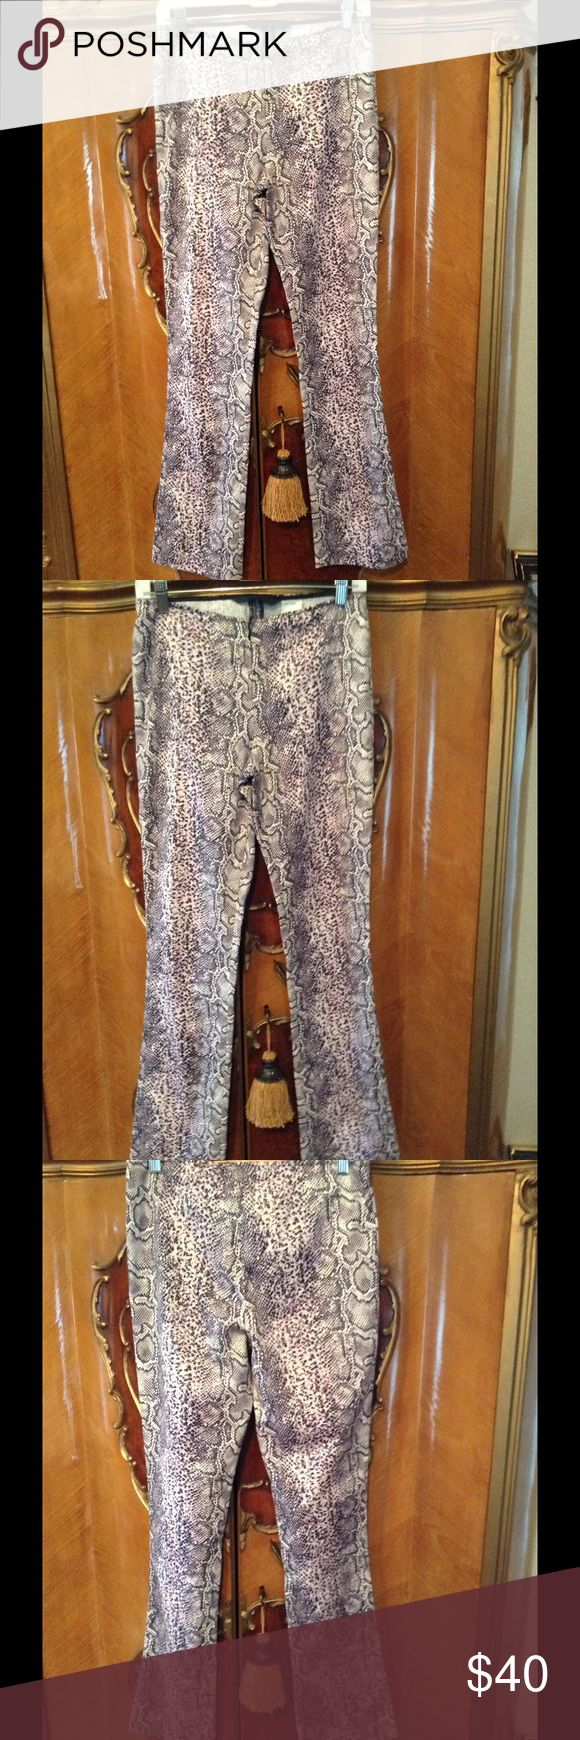 "Adorable Guess Collection Snake Print Pants Absolutely adorable snake print pants and black white and the pill list shade of pink ever, front seat of the black zipper, absolutely beautiful, pristine condition.  32"" inseam. Guess Collection Pants"